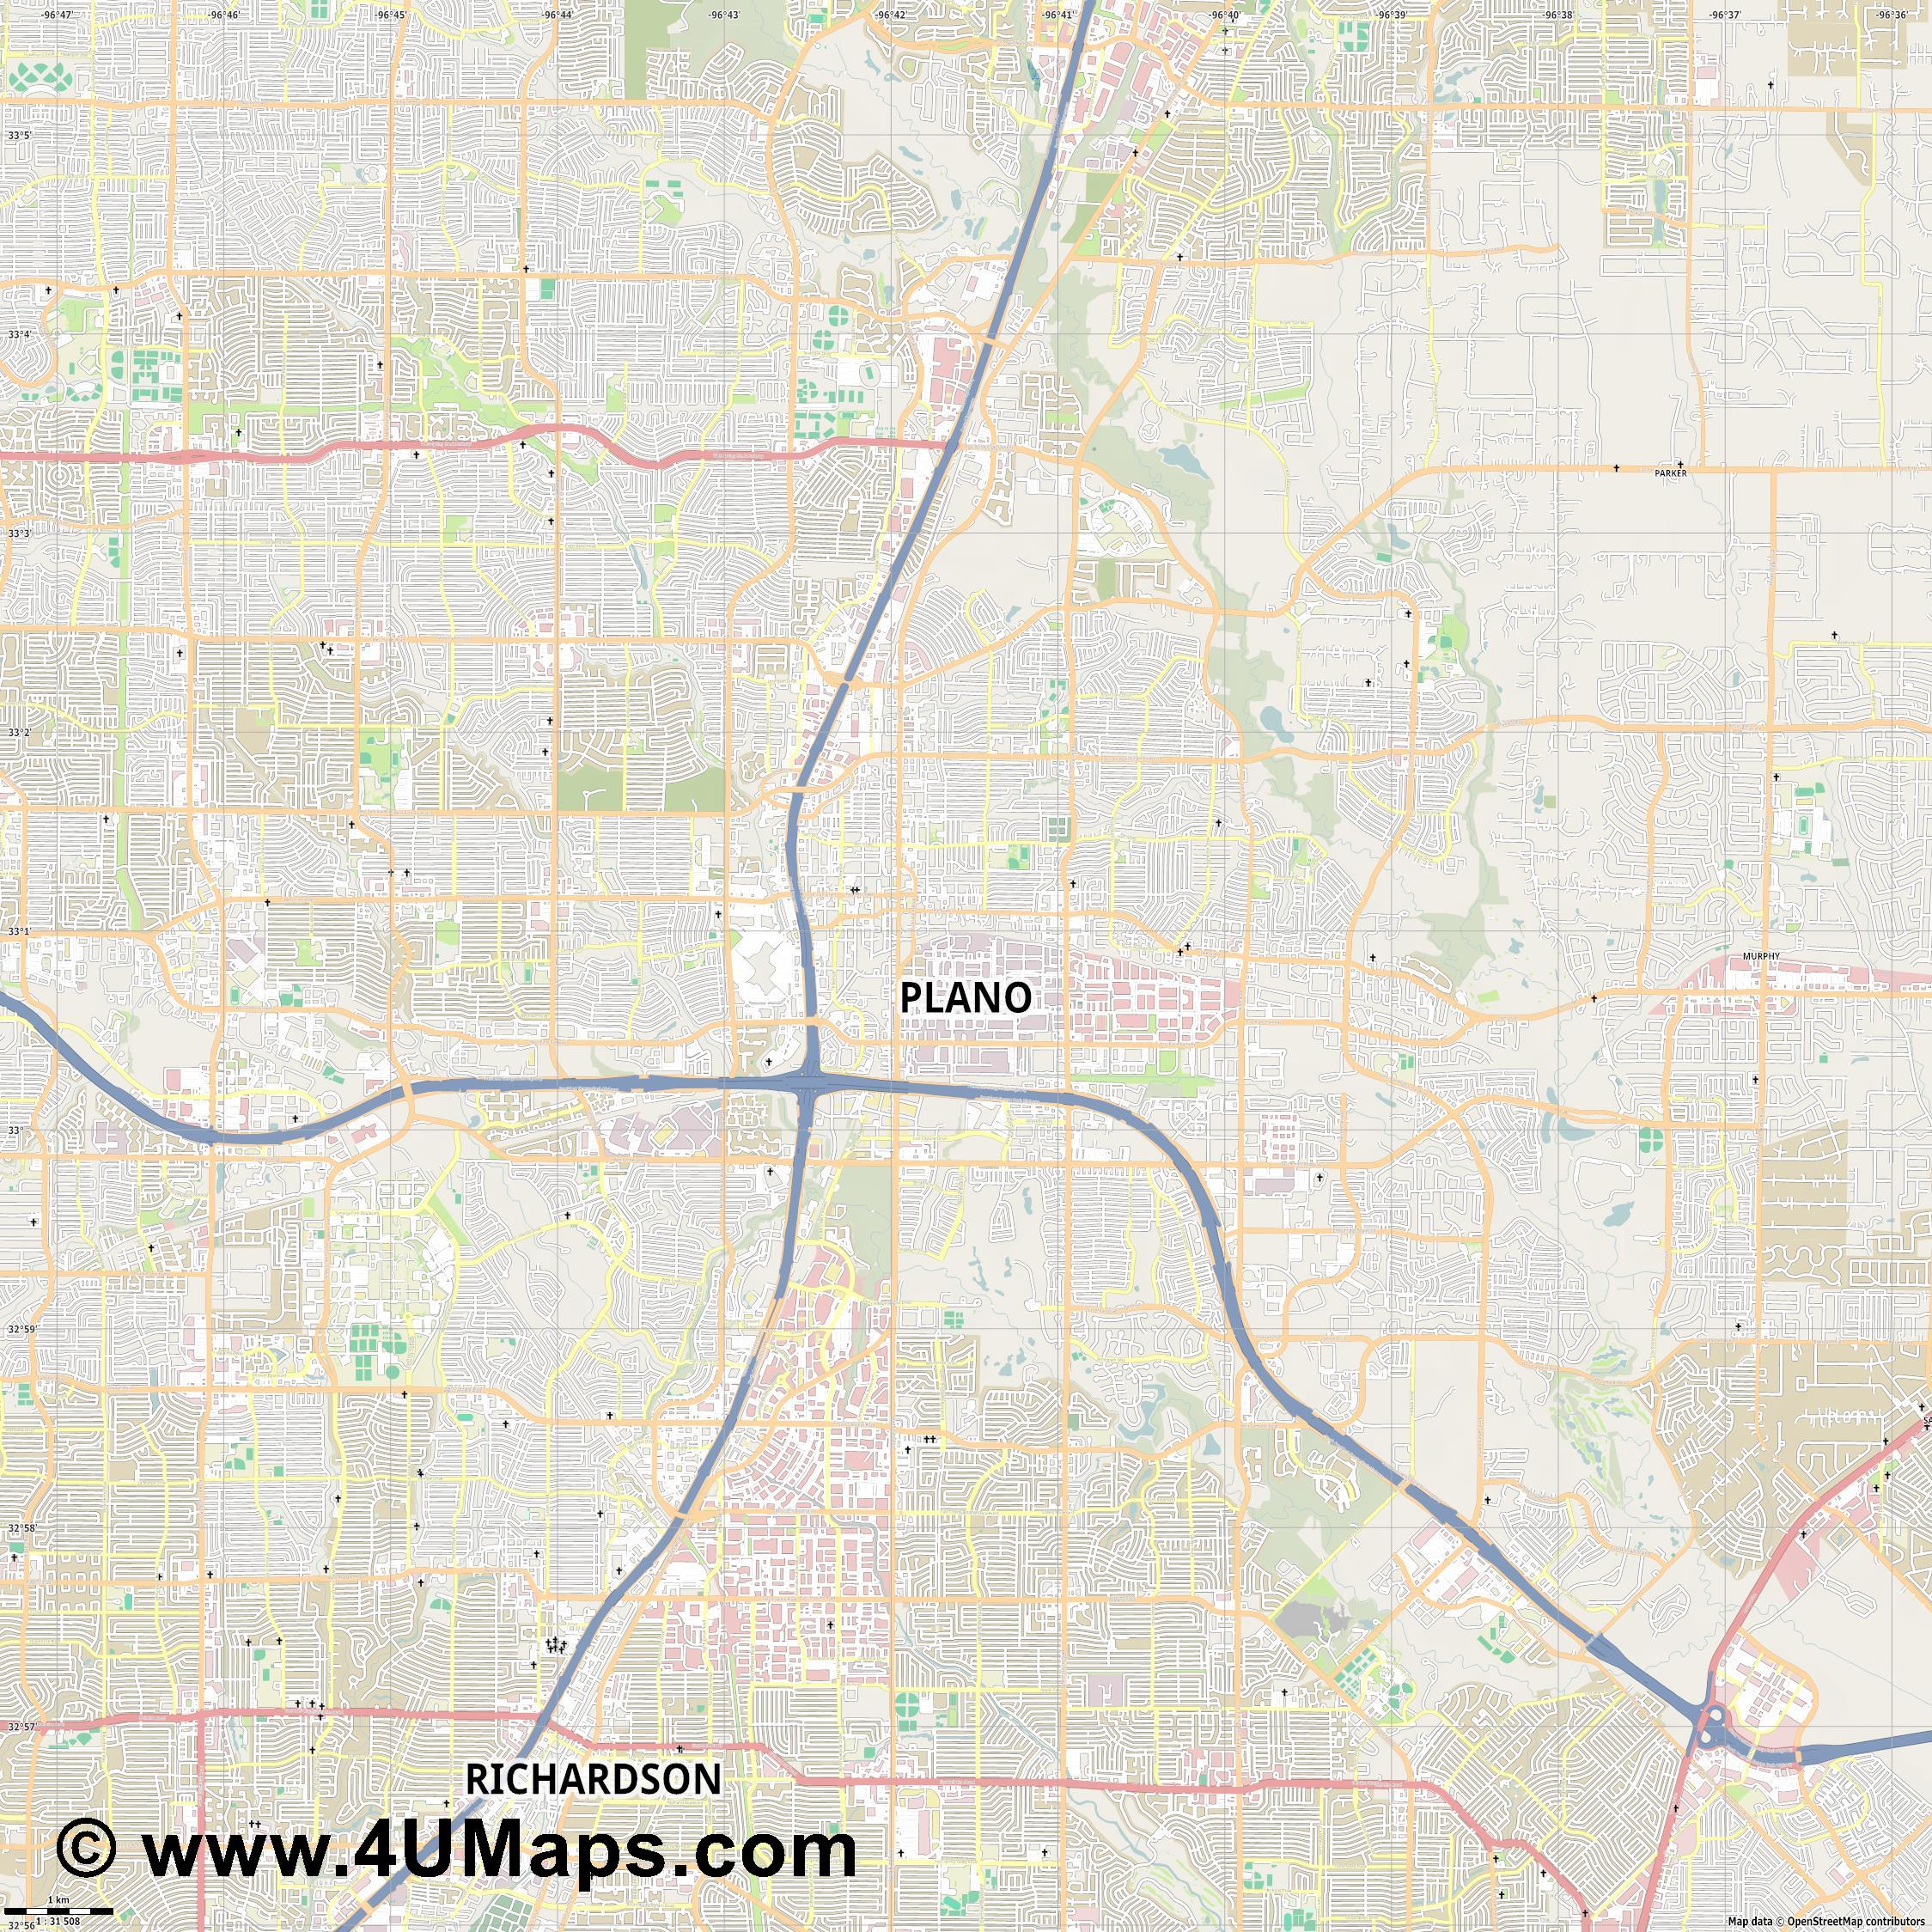 Plano  jpg high detail, large area preview vector city map